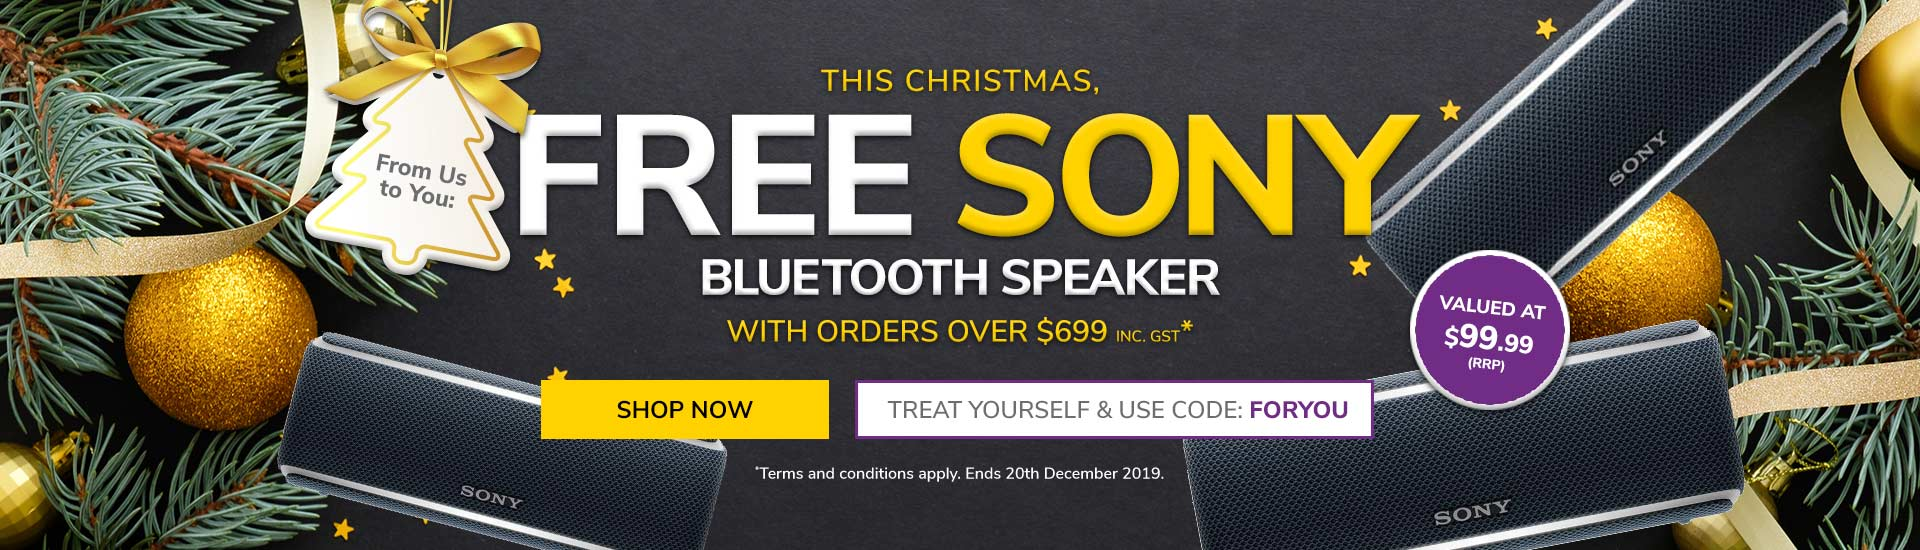 Free Sony Bluetooth Speaker orders Over $699 - ID Warehouse